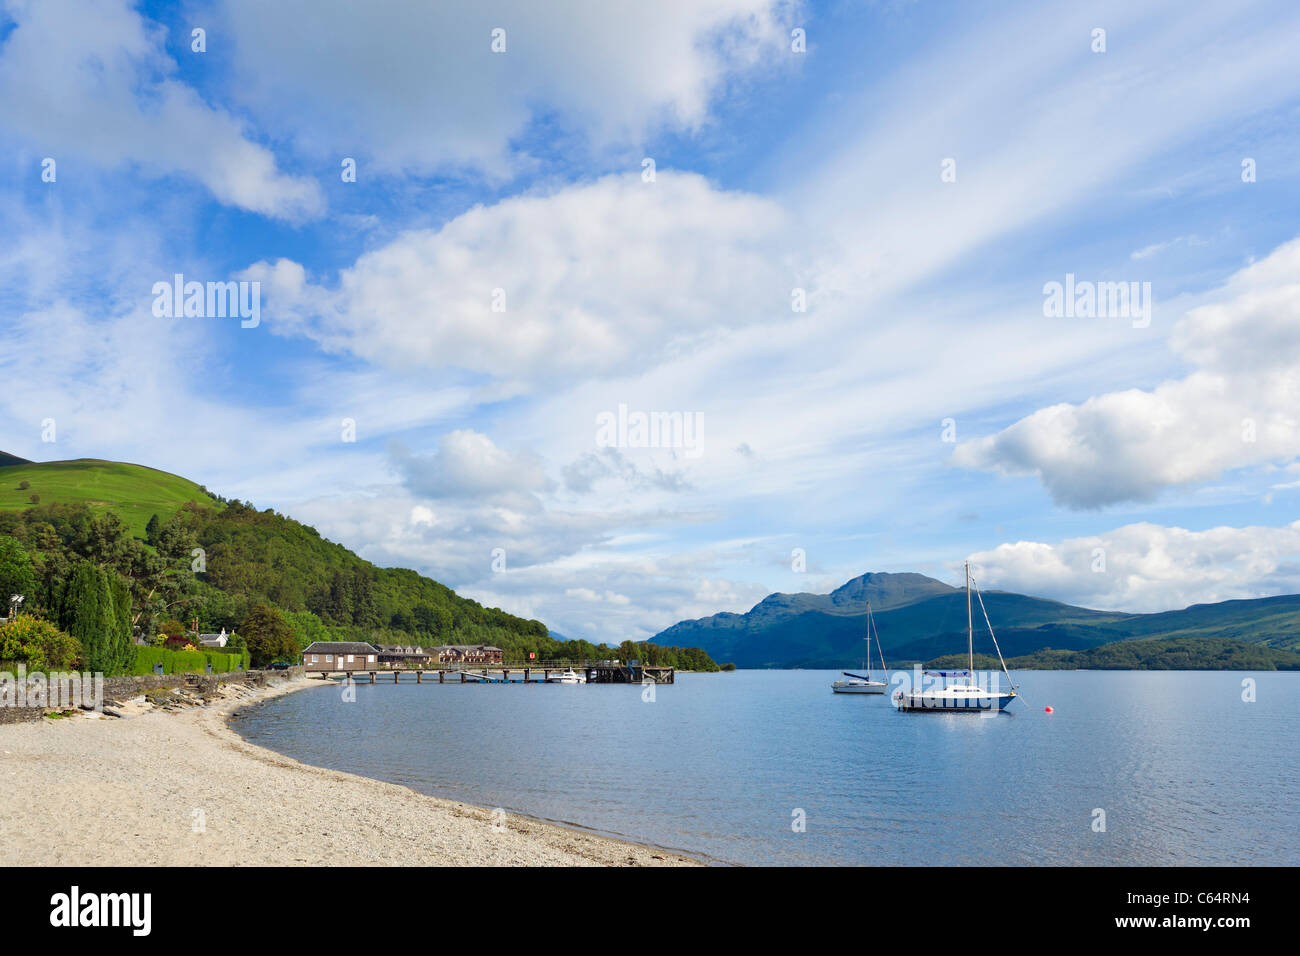 The Beach at Luss on the west bank of Loch Lomond, Argyll and Bute, Scotland, UK - Stock Image